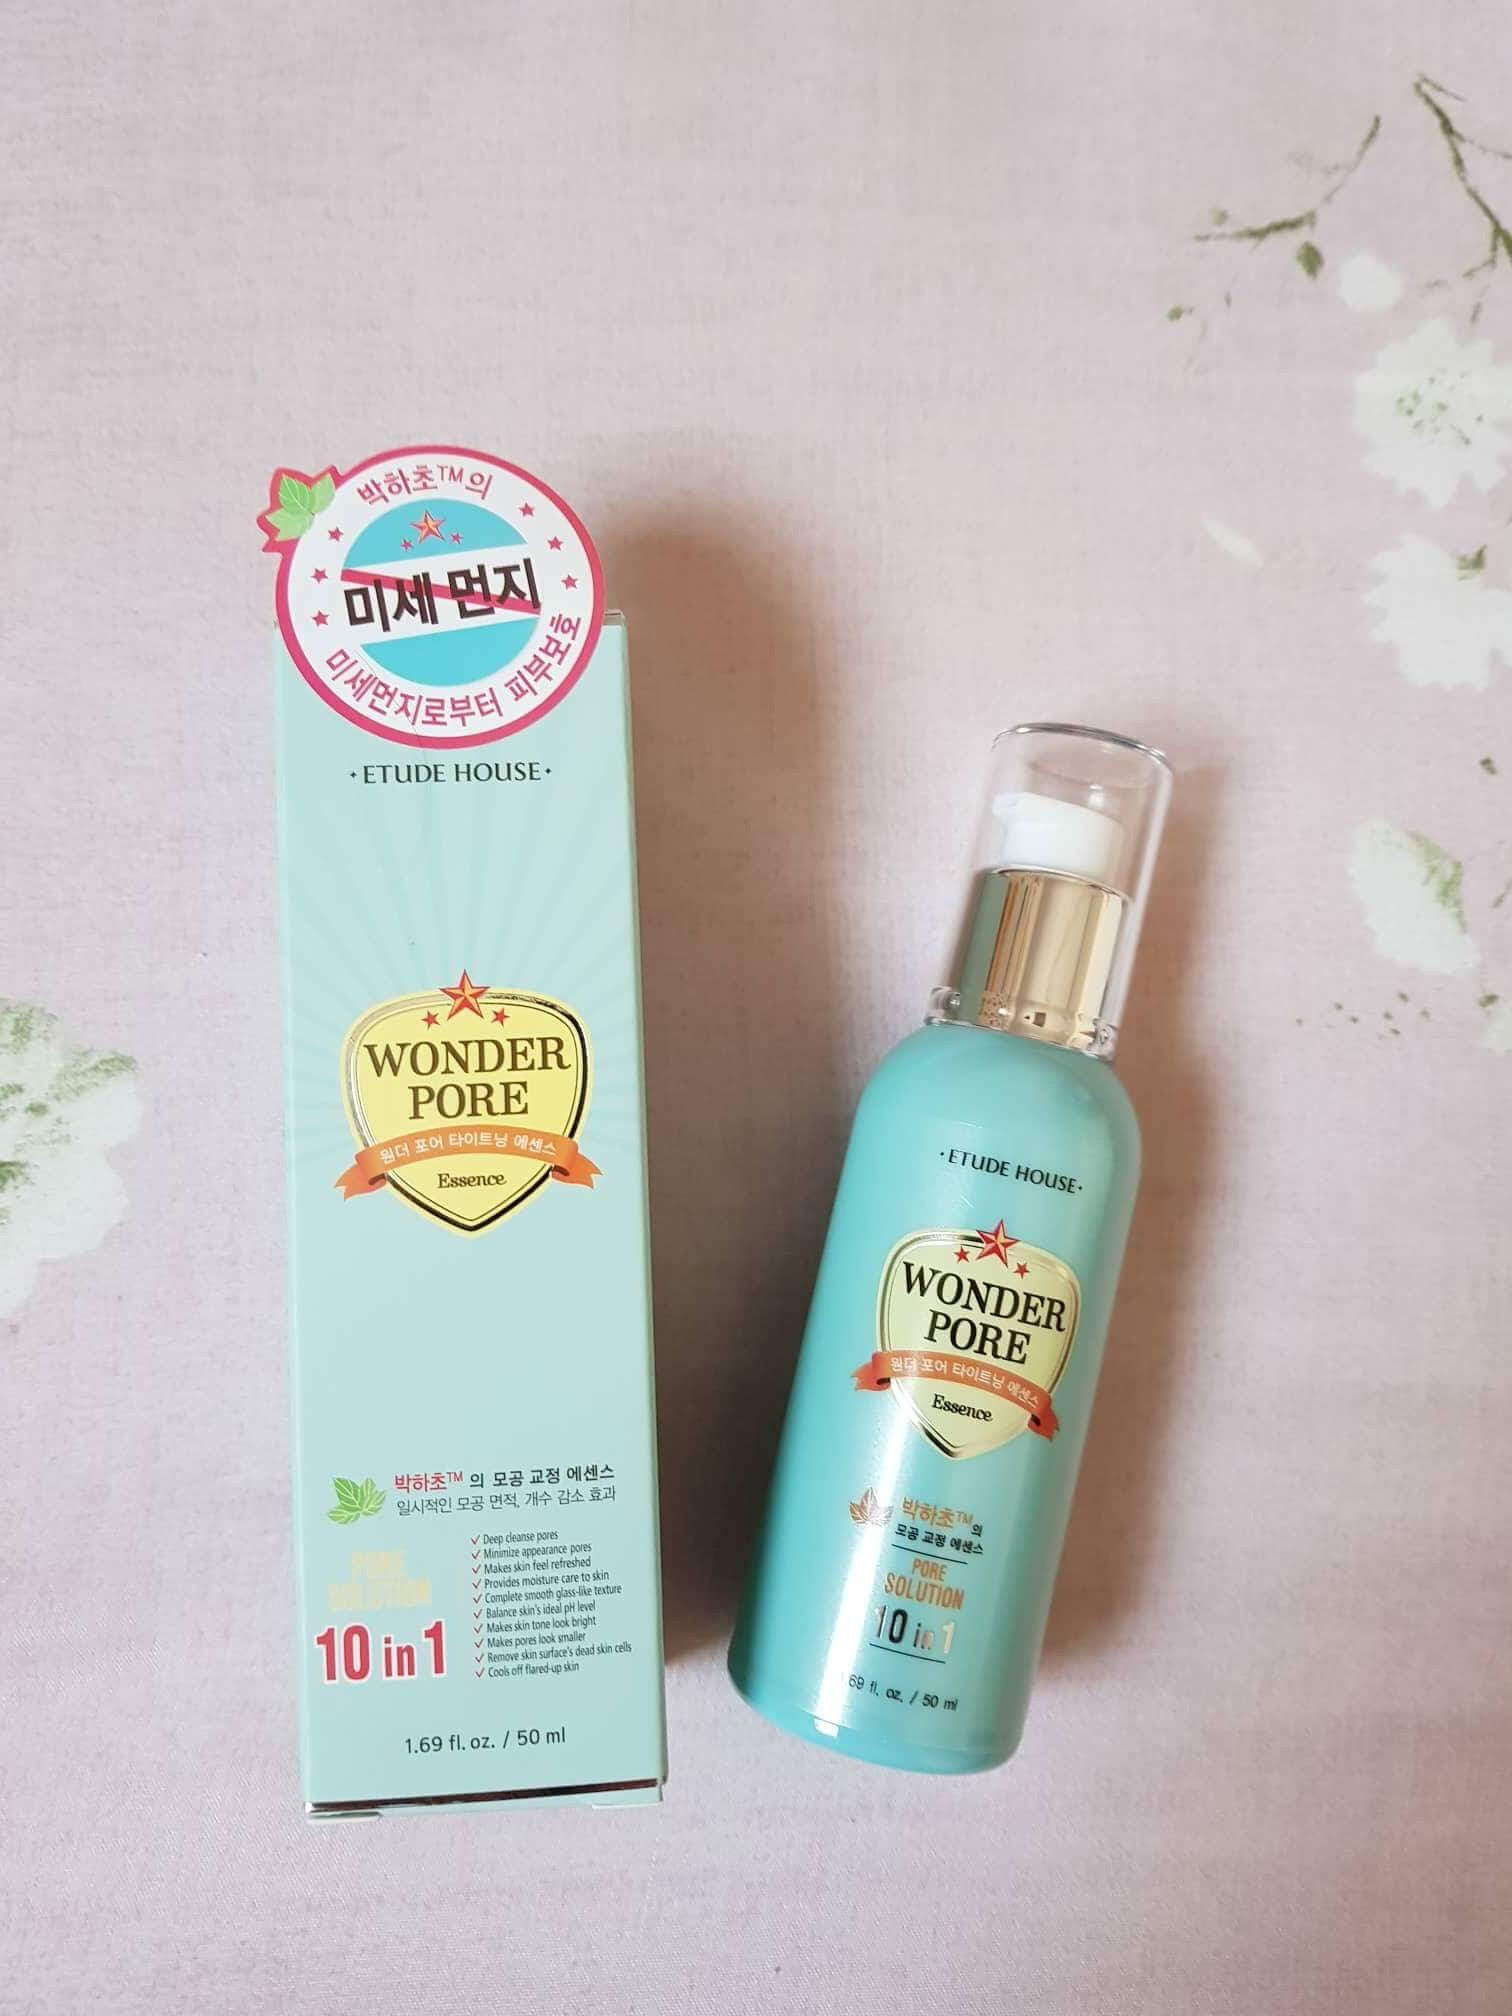 Etude House Wonder Pore Tightening Essence 50ml Korean Skincare Freshner 500 Ml 1537280139 1jpeg